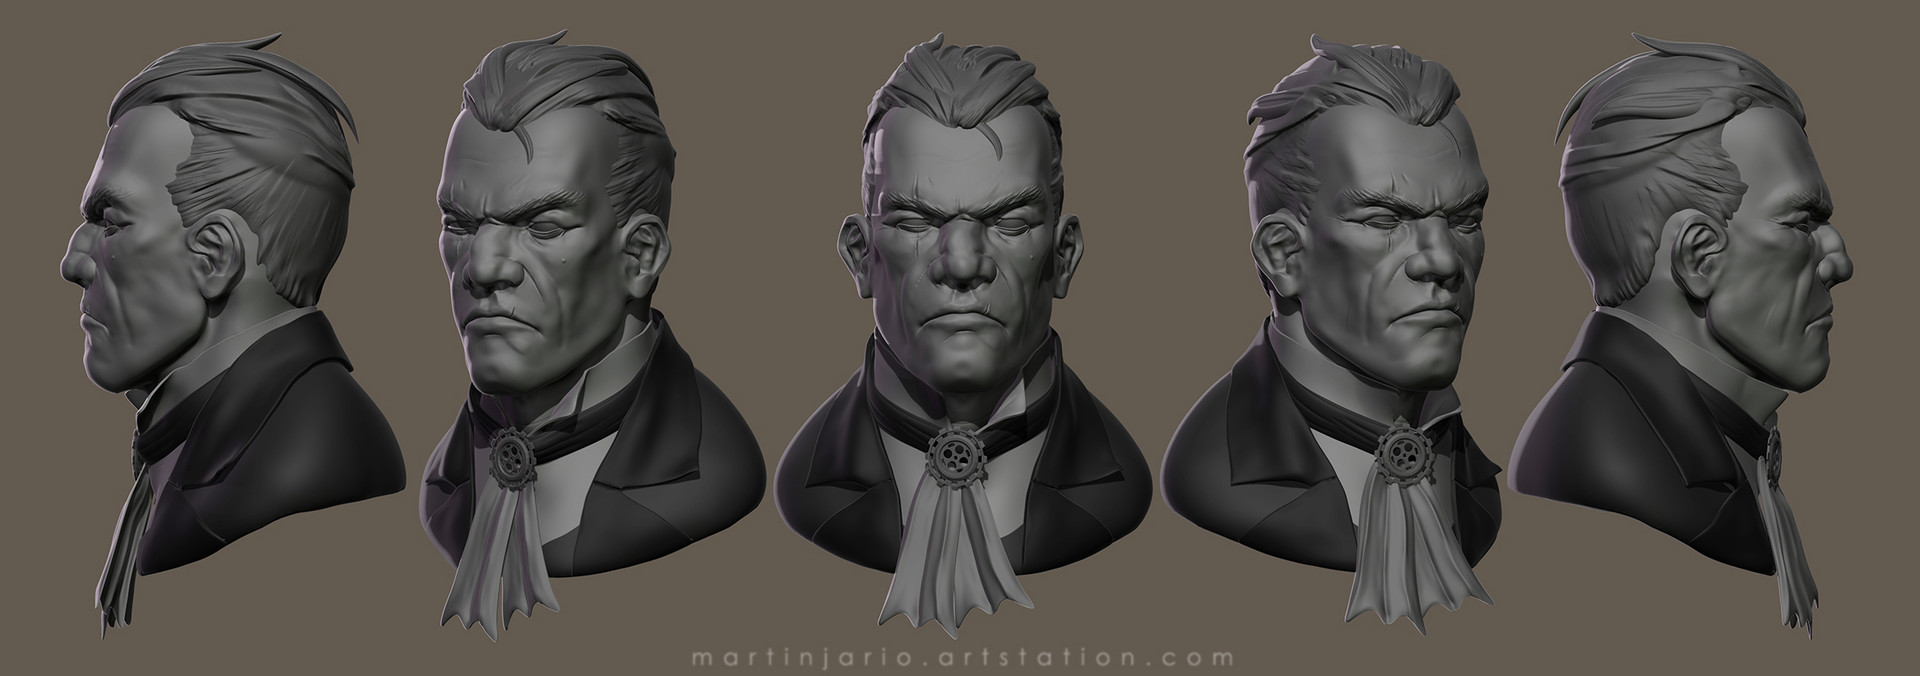 Martin jario views martinjario dishonored zbrush